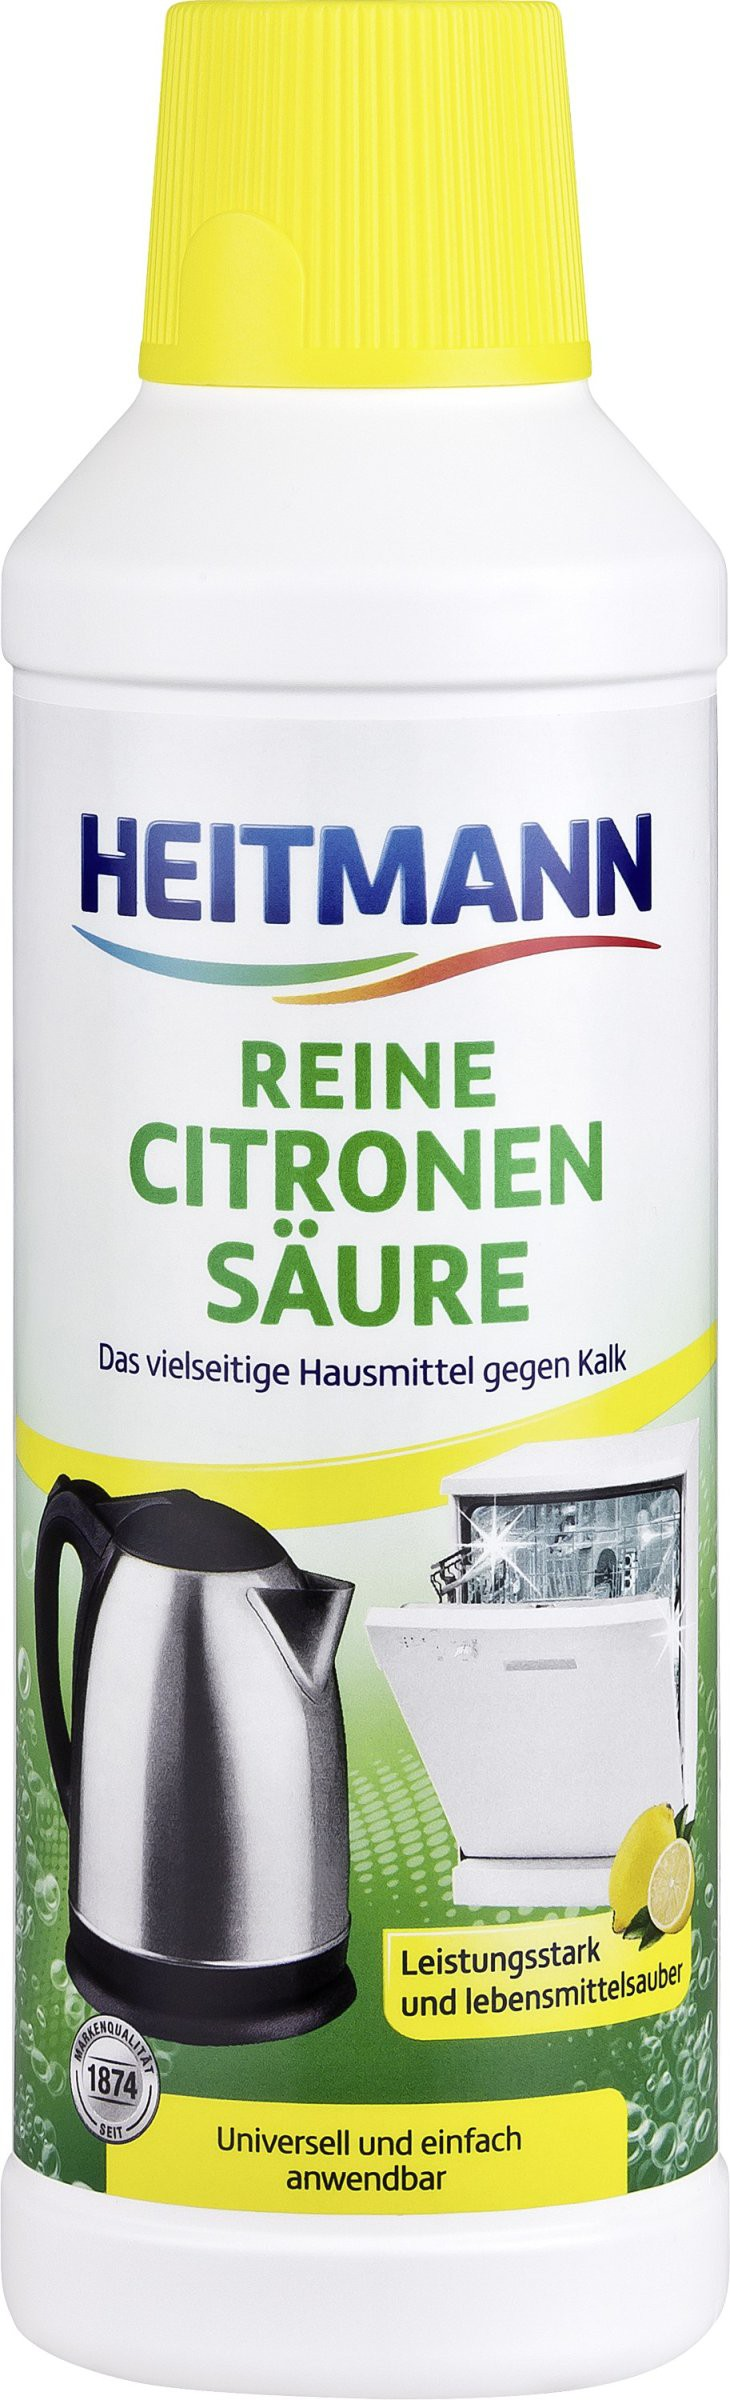 heitmann reine citronens ure fl ssig 500 ml flasche. Black Bedroom Furniture Sets. Home Design Ideas